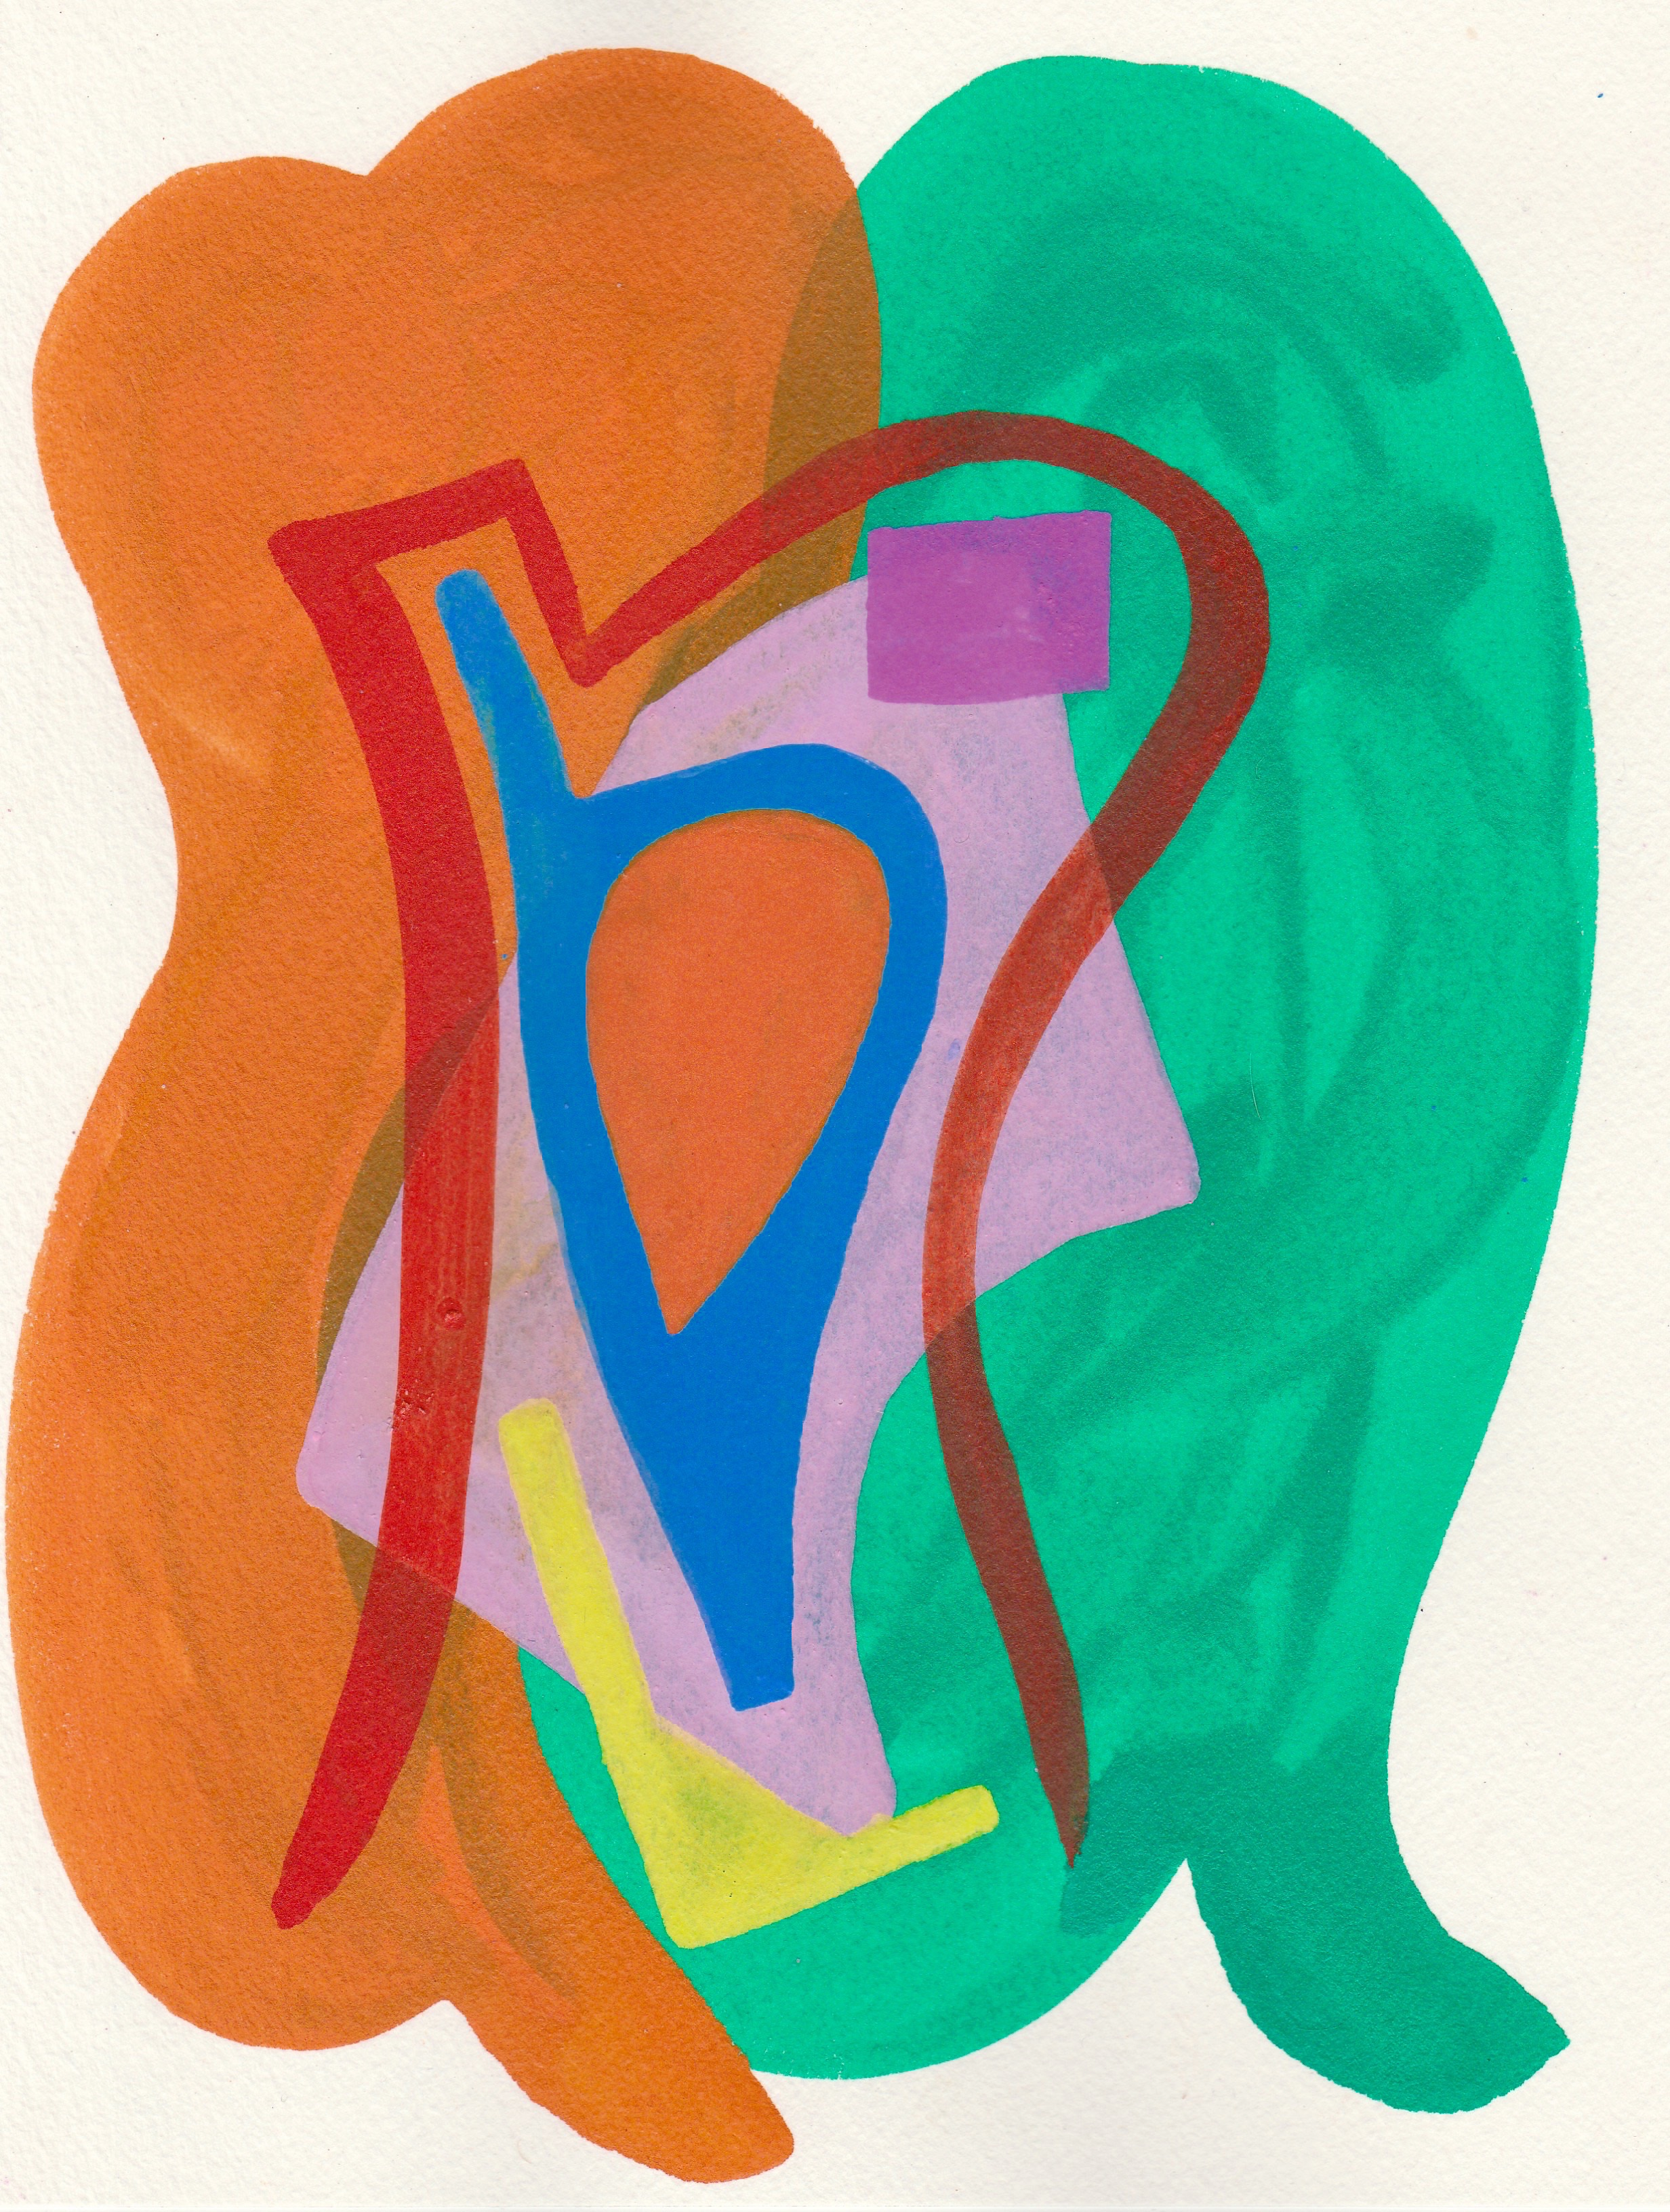 Shape-Up #17   2017  Watercolor, Guache  8.5 x 11 inches